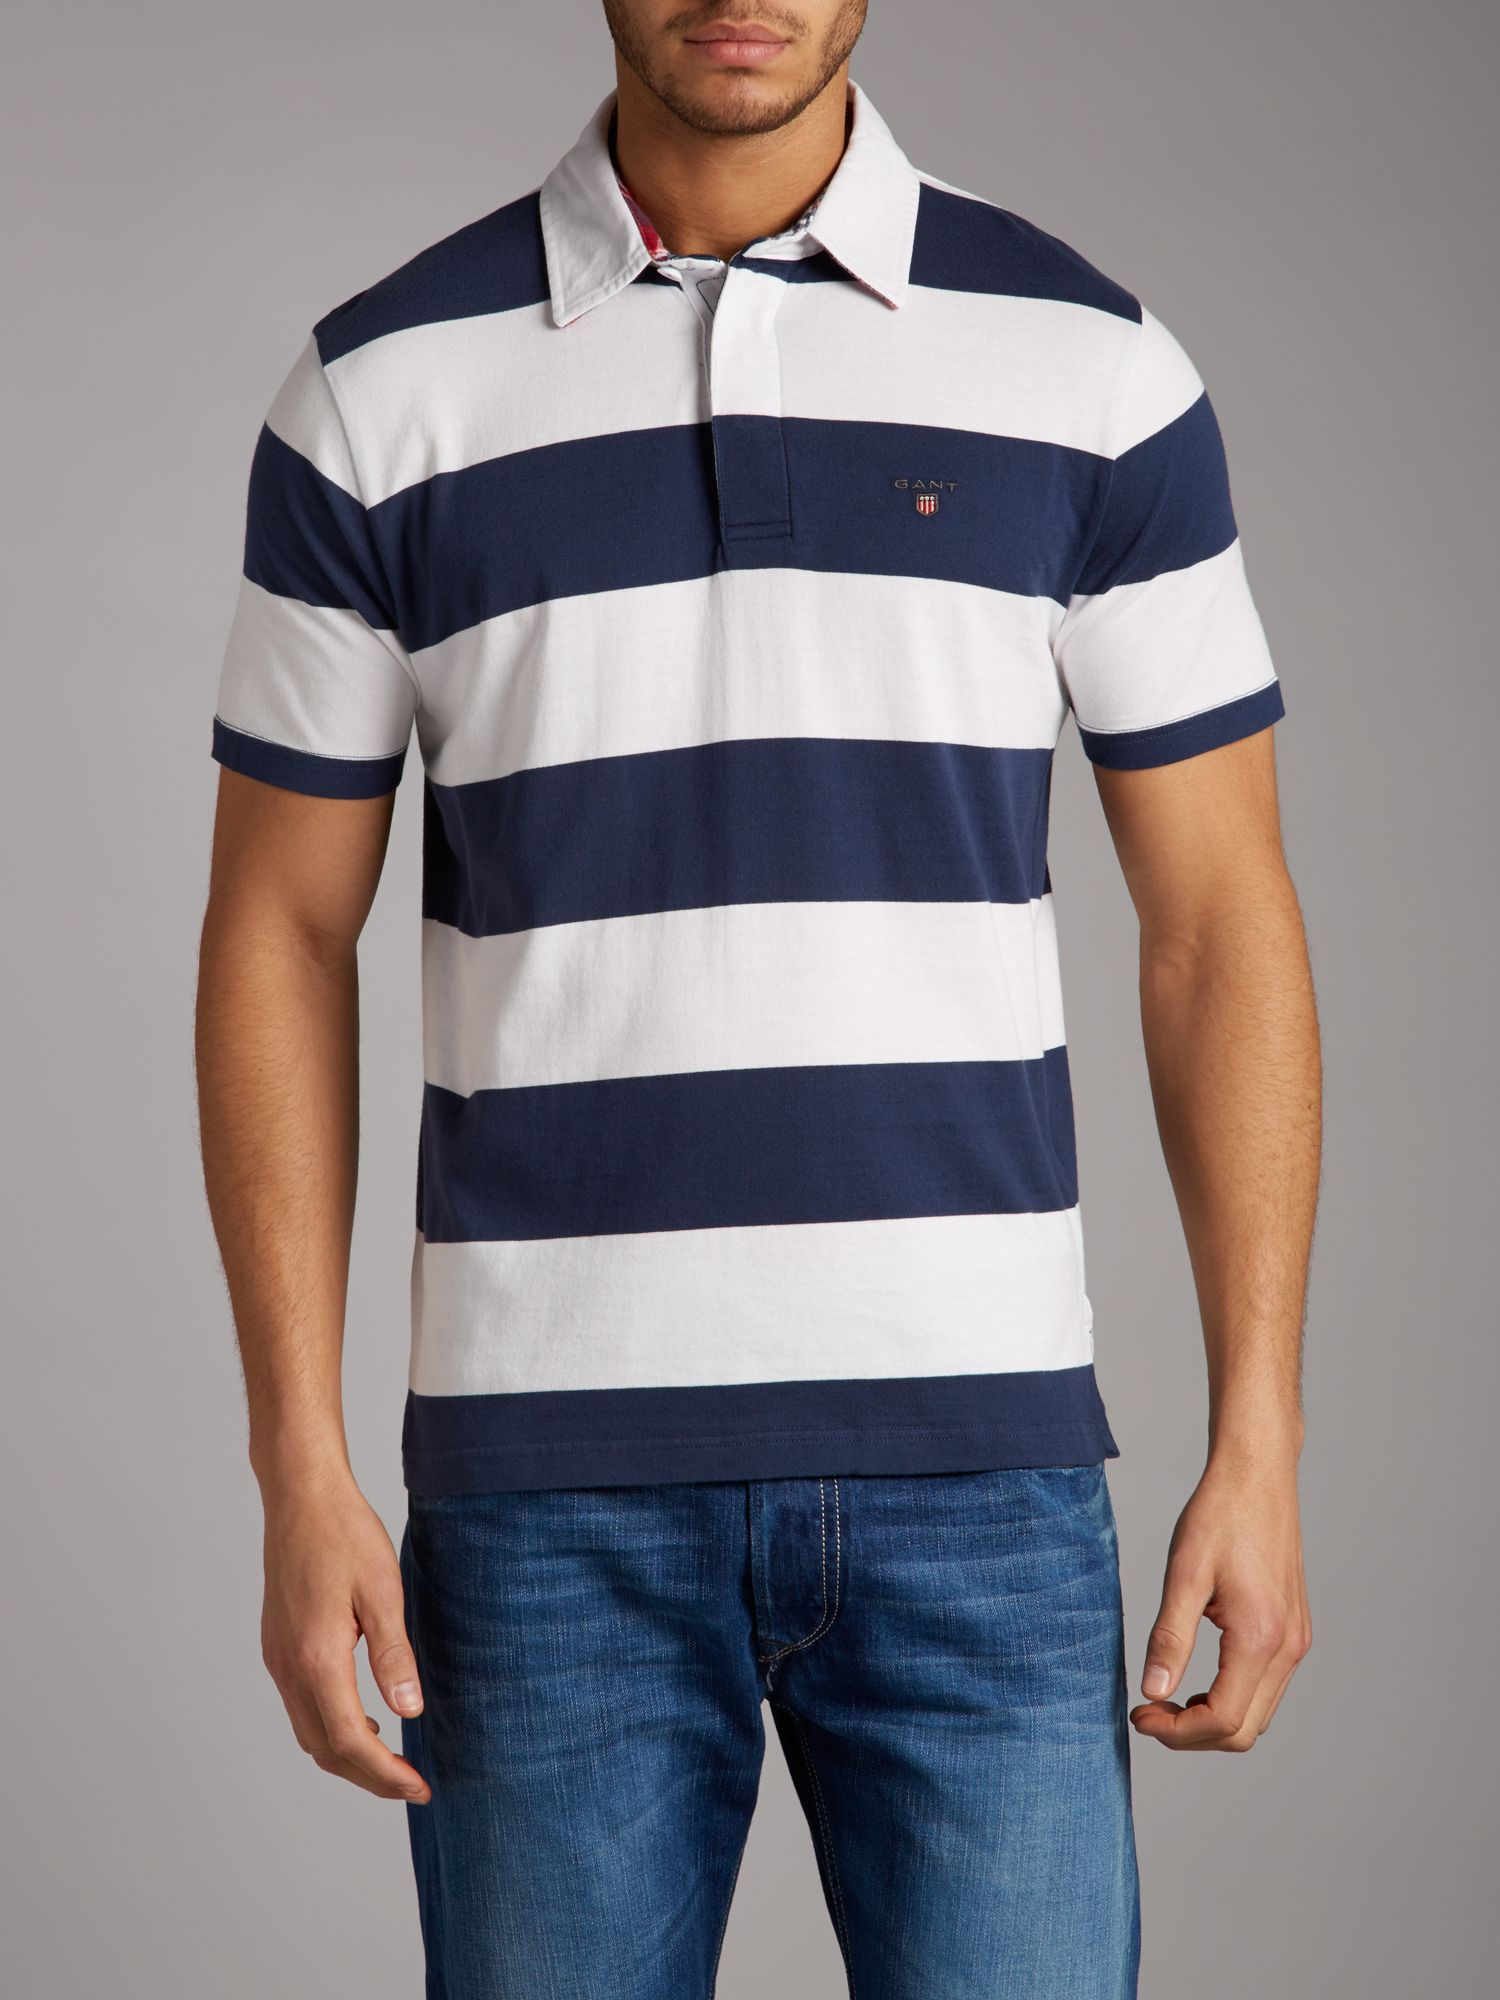 Bar stripe short sleeve rugby top